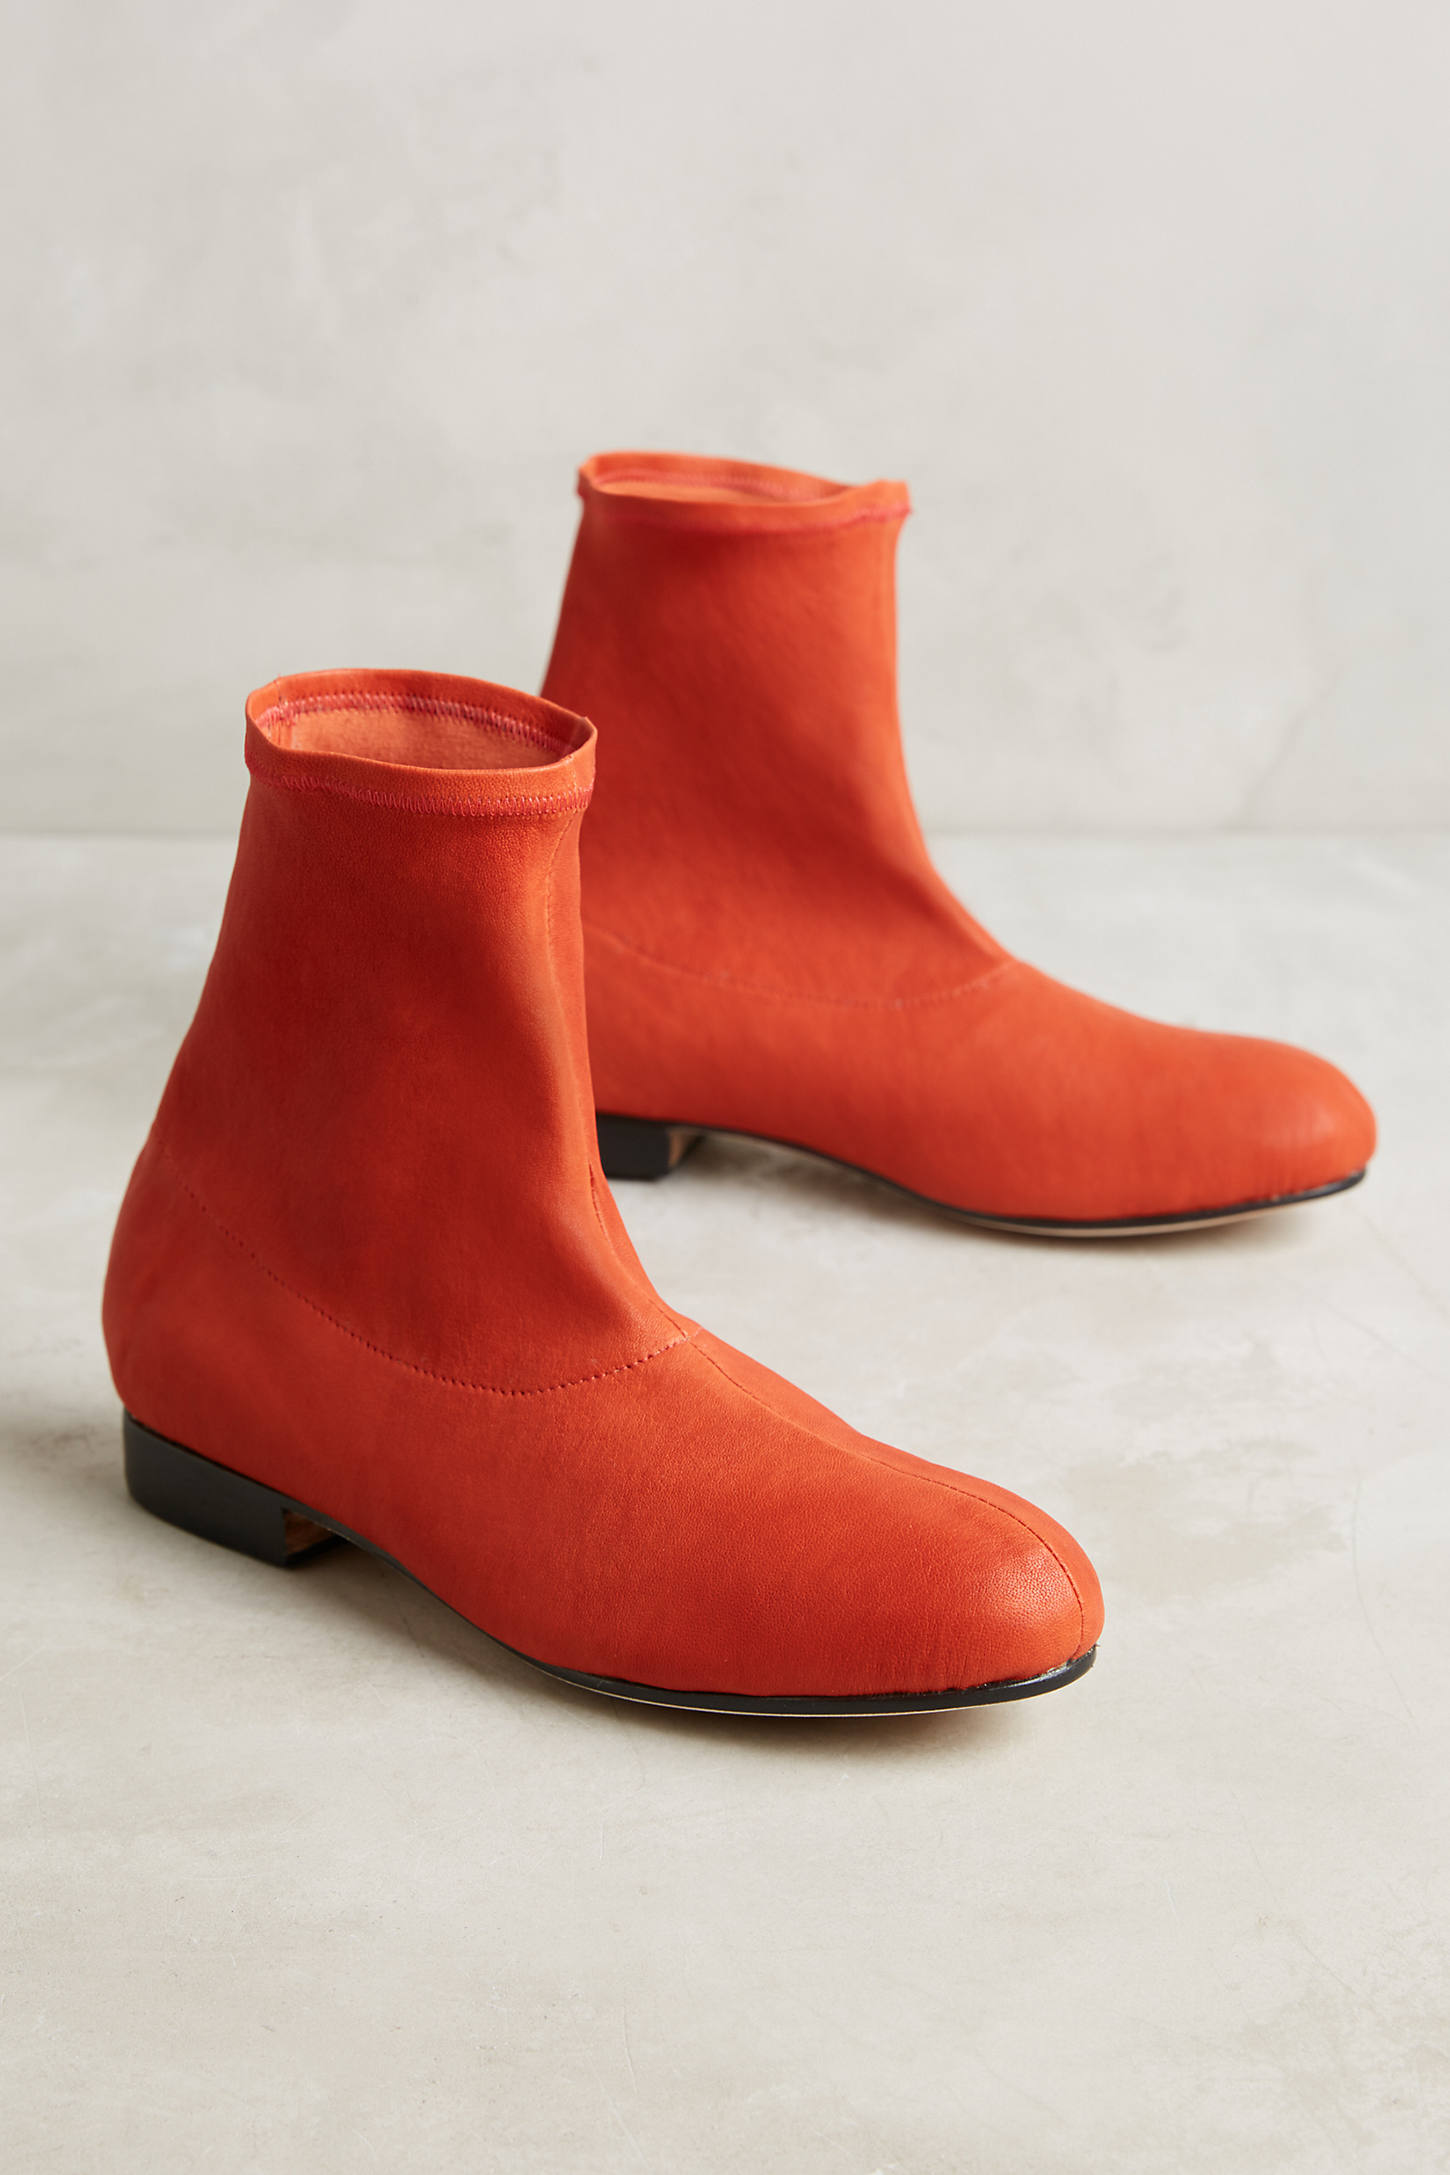 The Palatines Firmo Velvet Ankle Boots